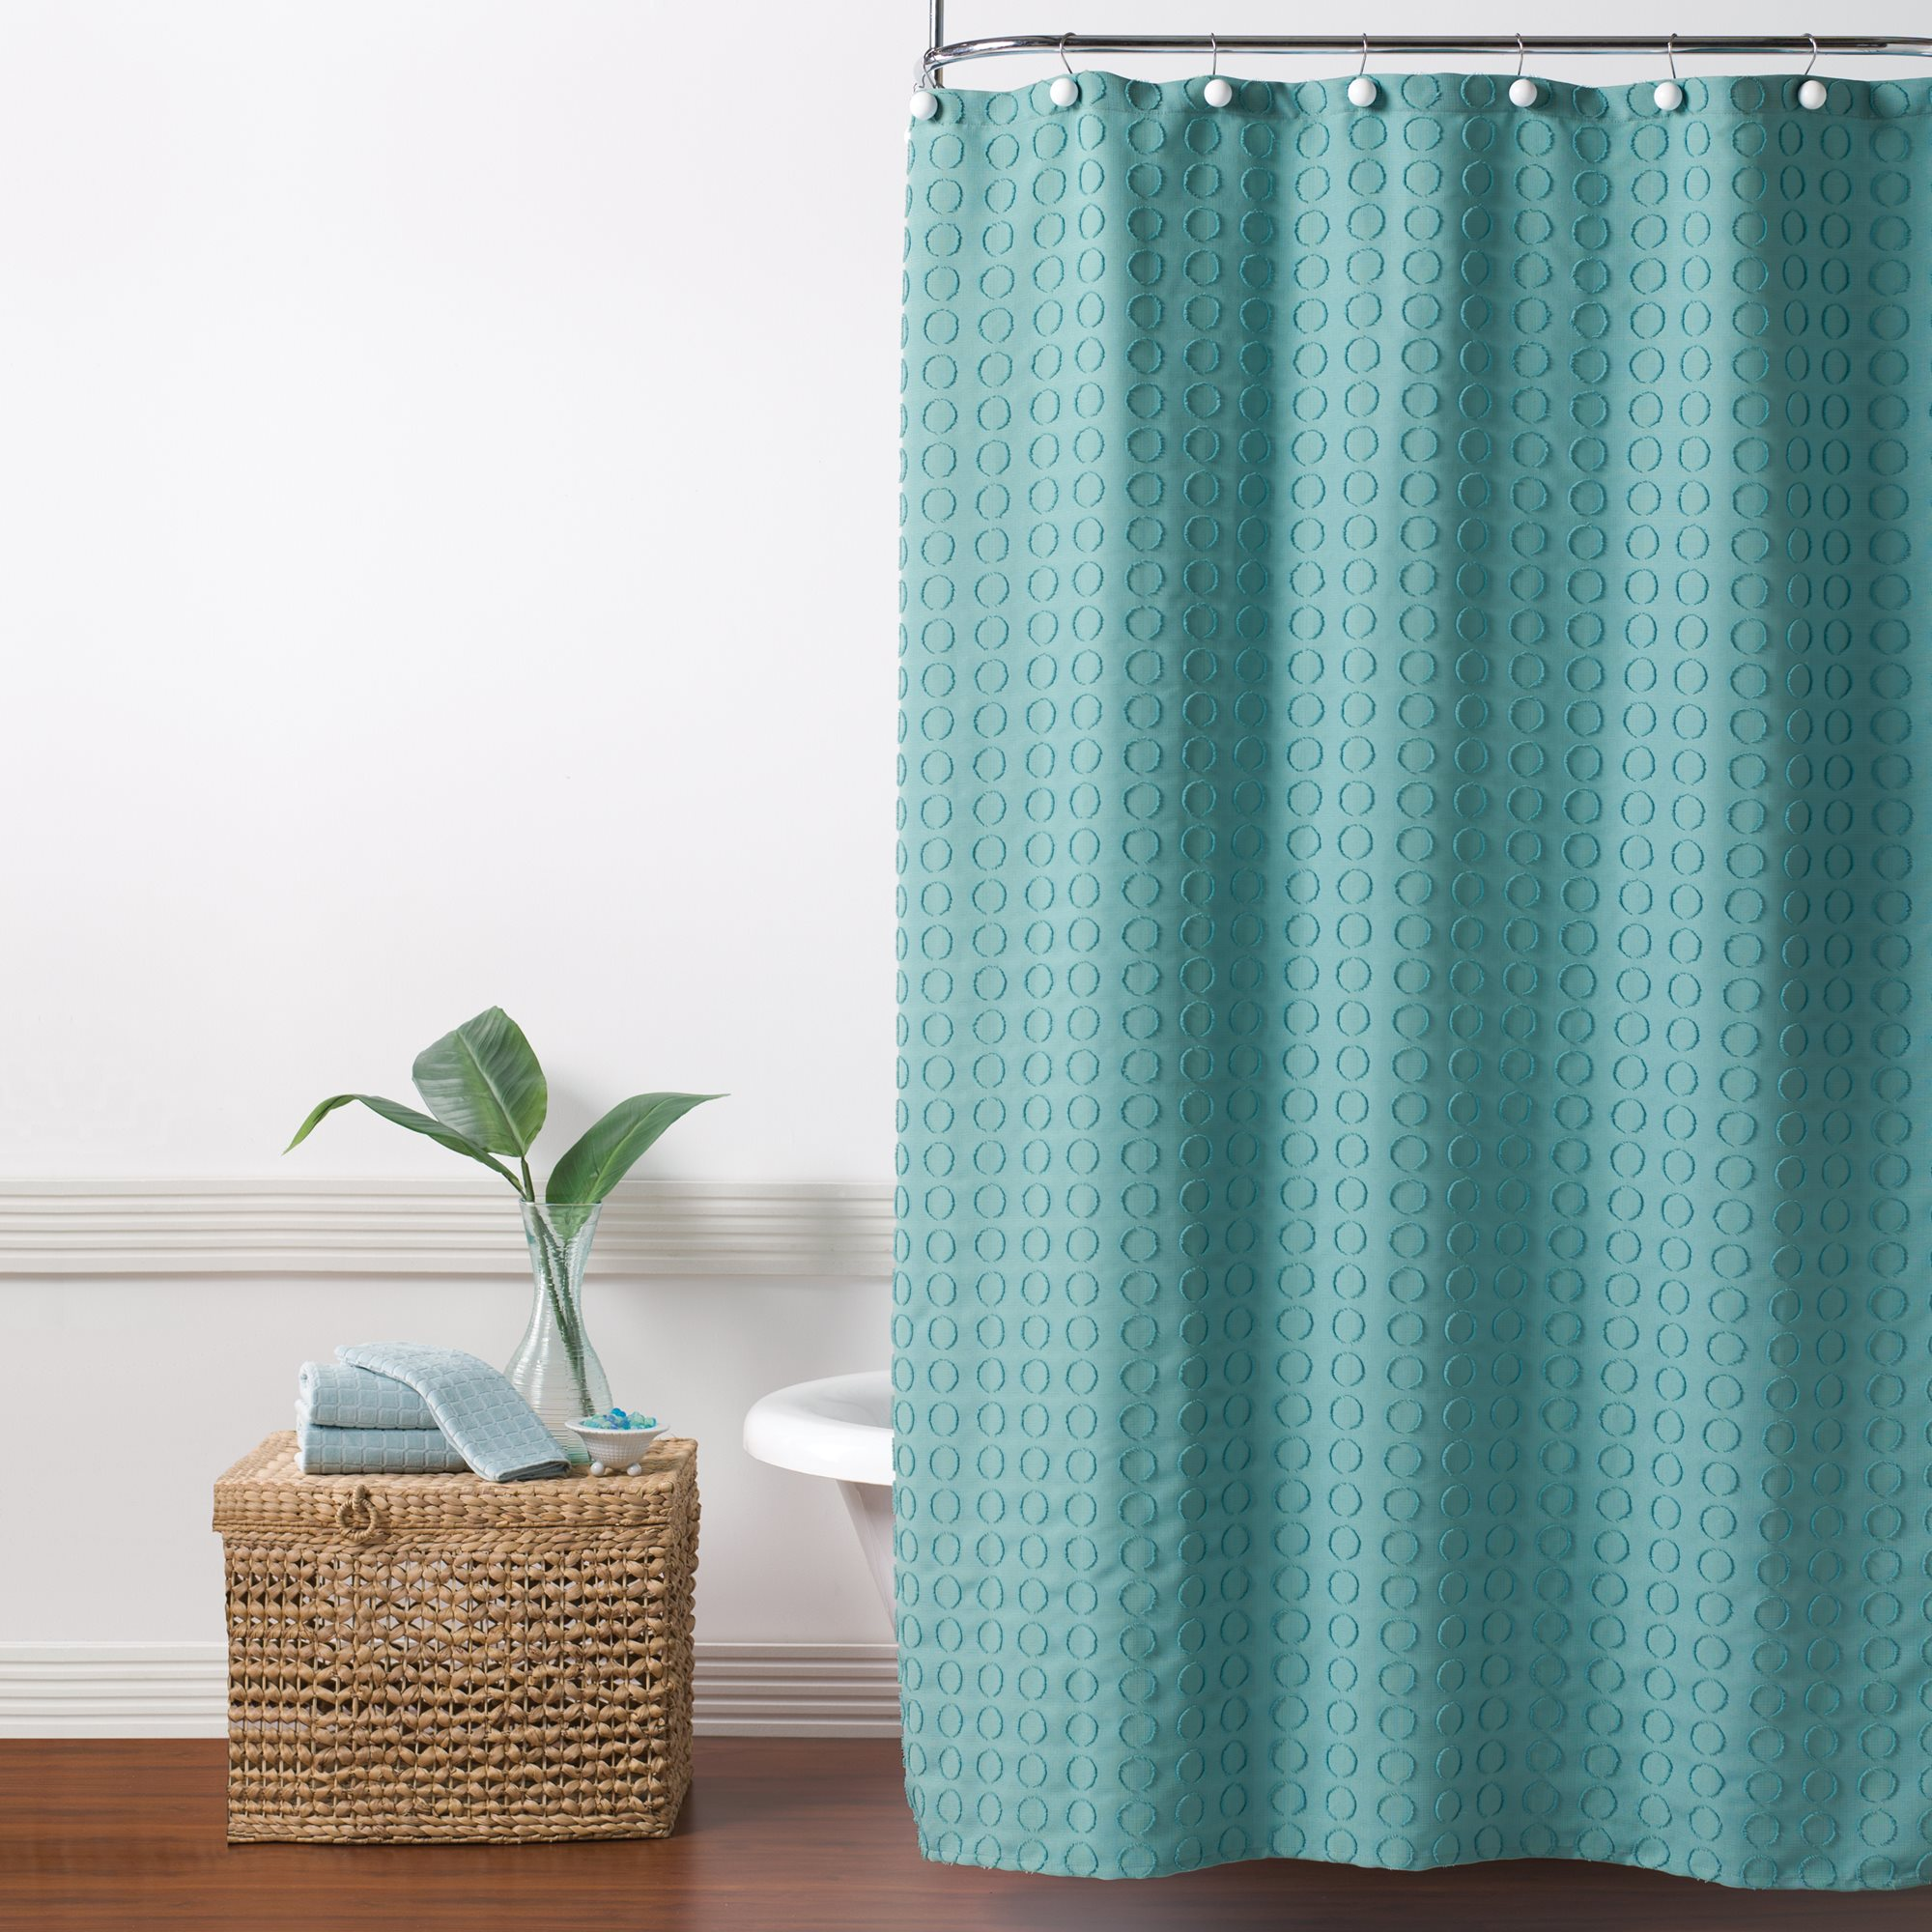 Details About Saturday Knight Ltd Clipped Circles Fabric Bath Shower Curtain 70x72 Teal